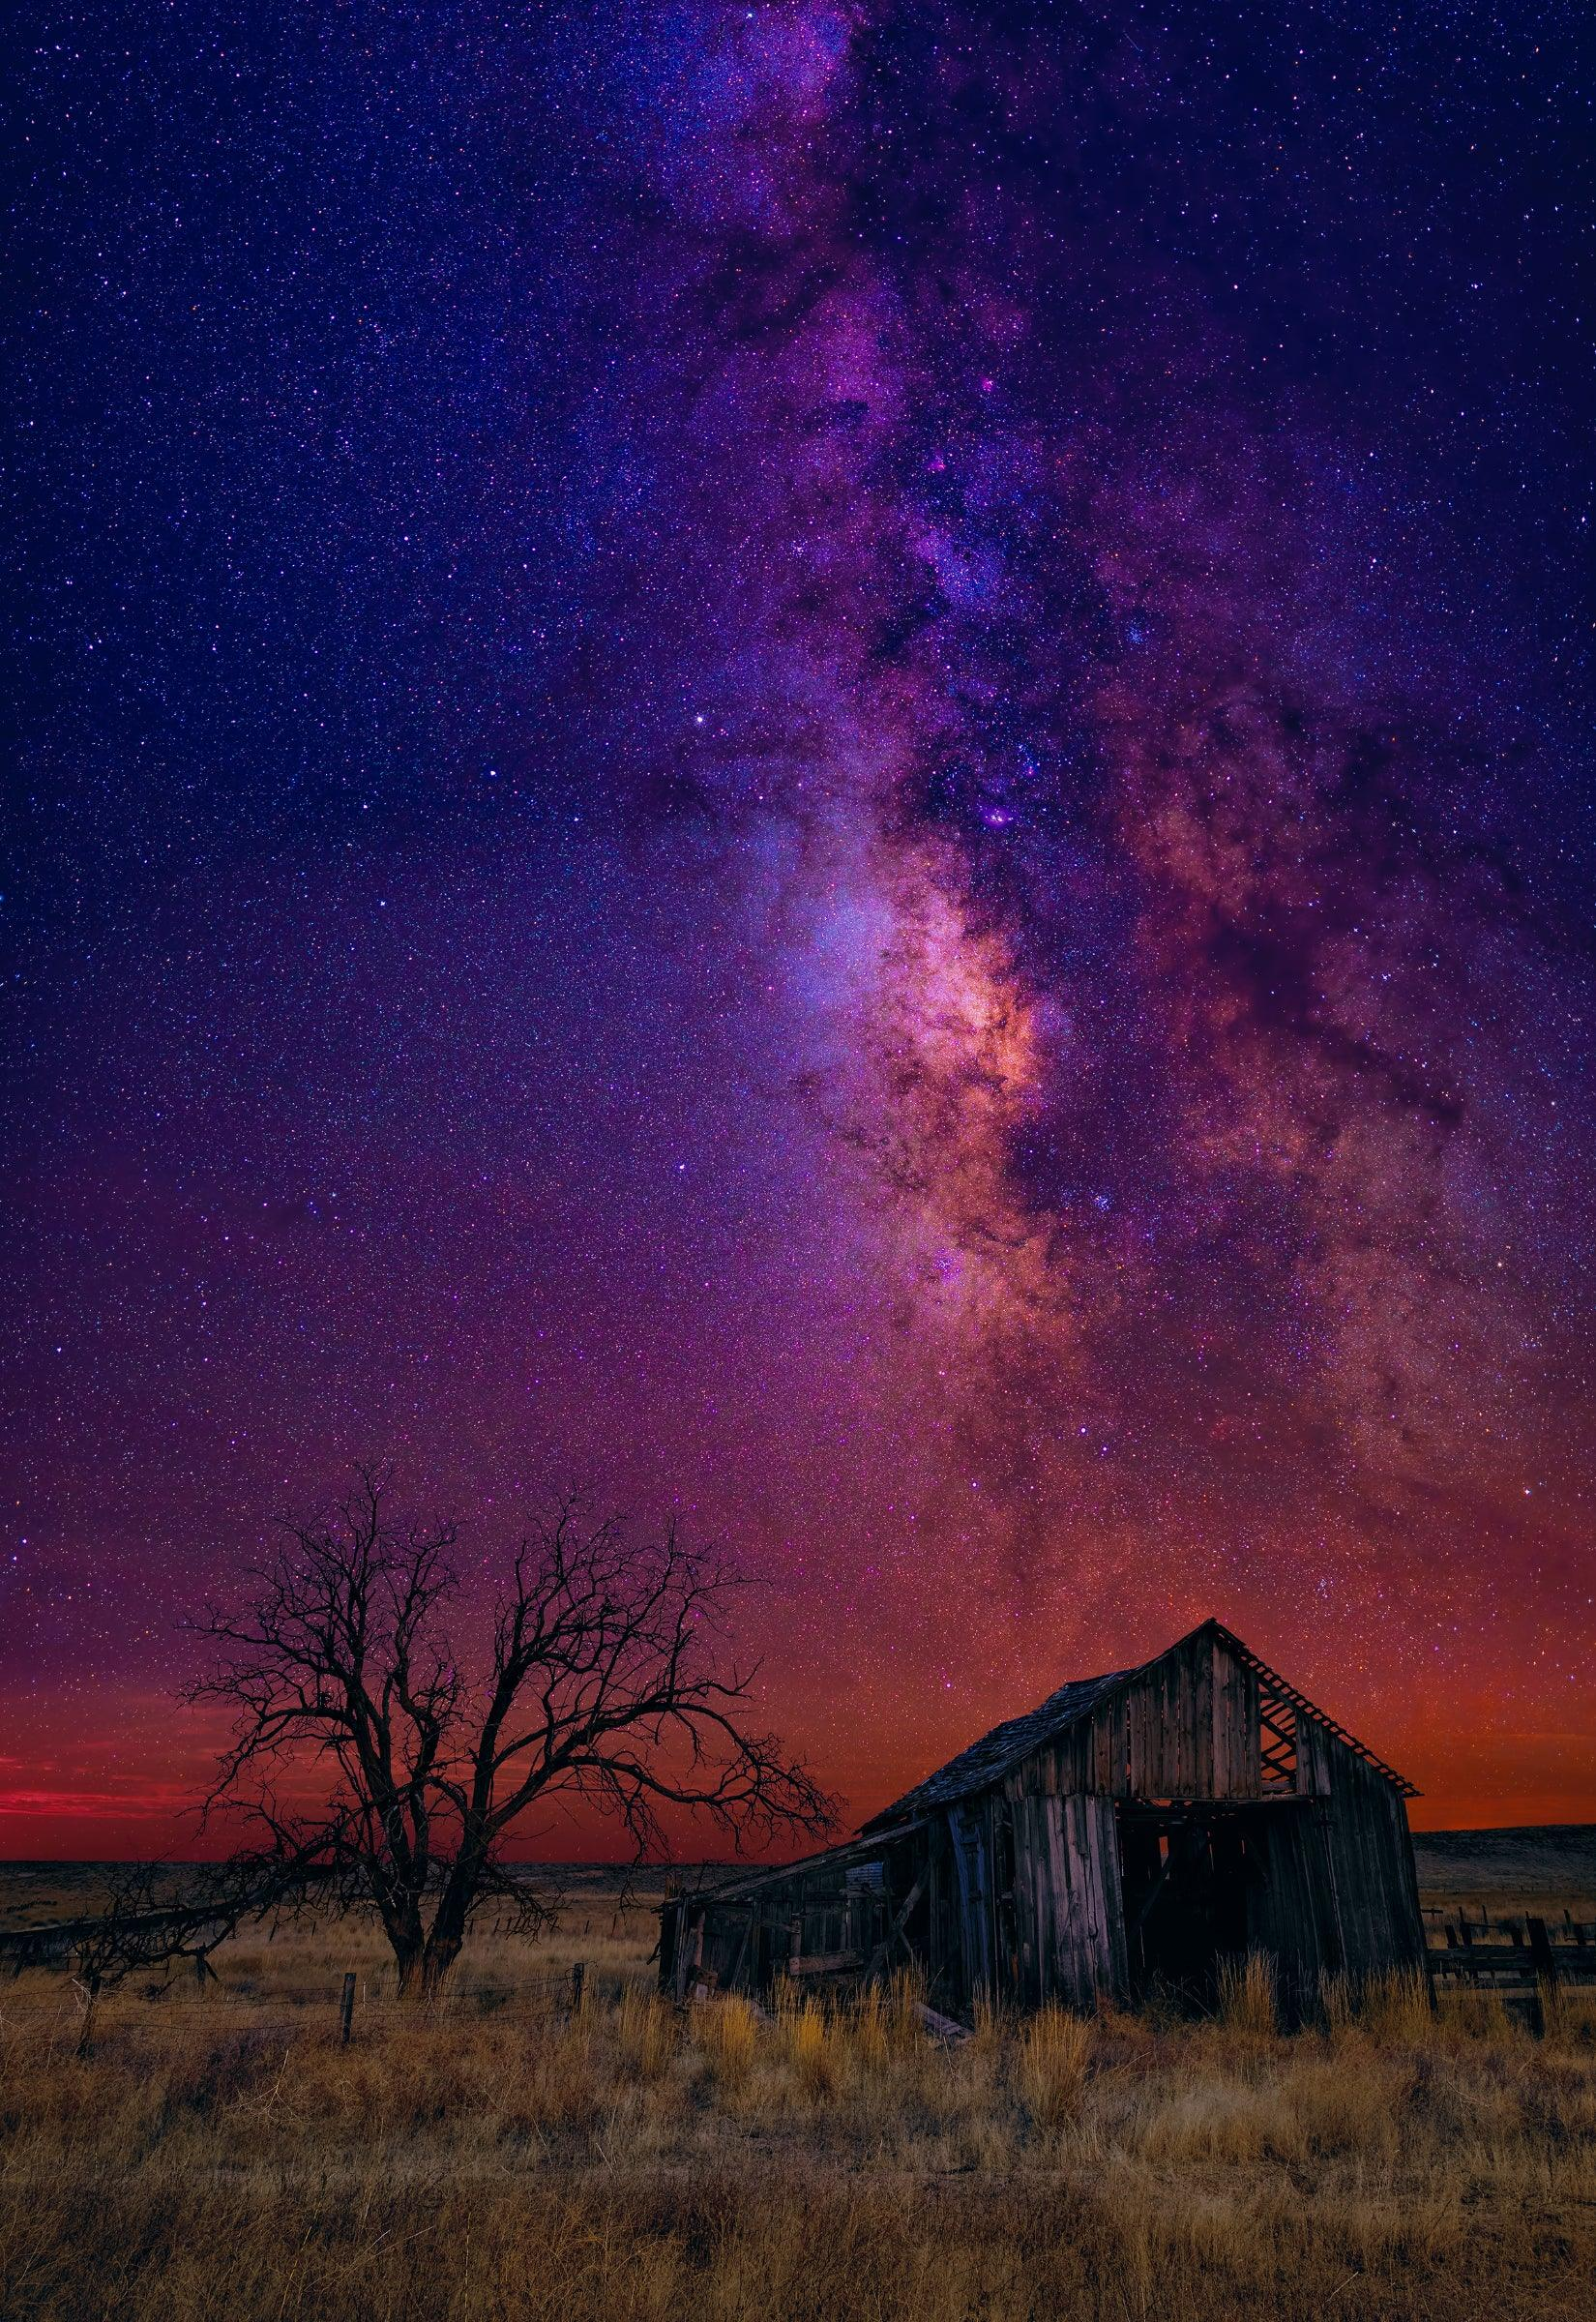 Old wooden shack and tree in a grass field at night under a sky filled with stars and the Milky Way